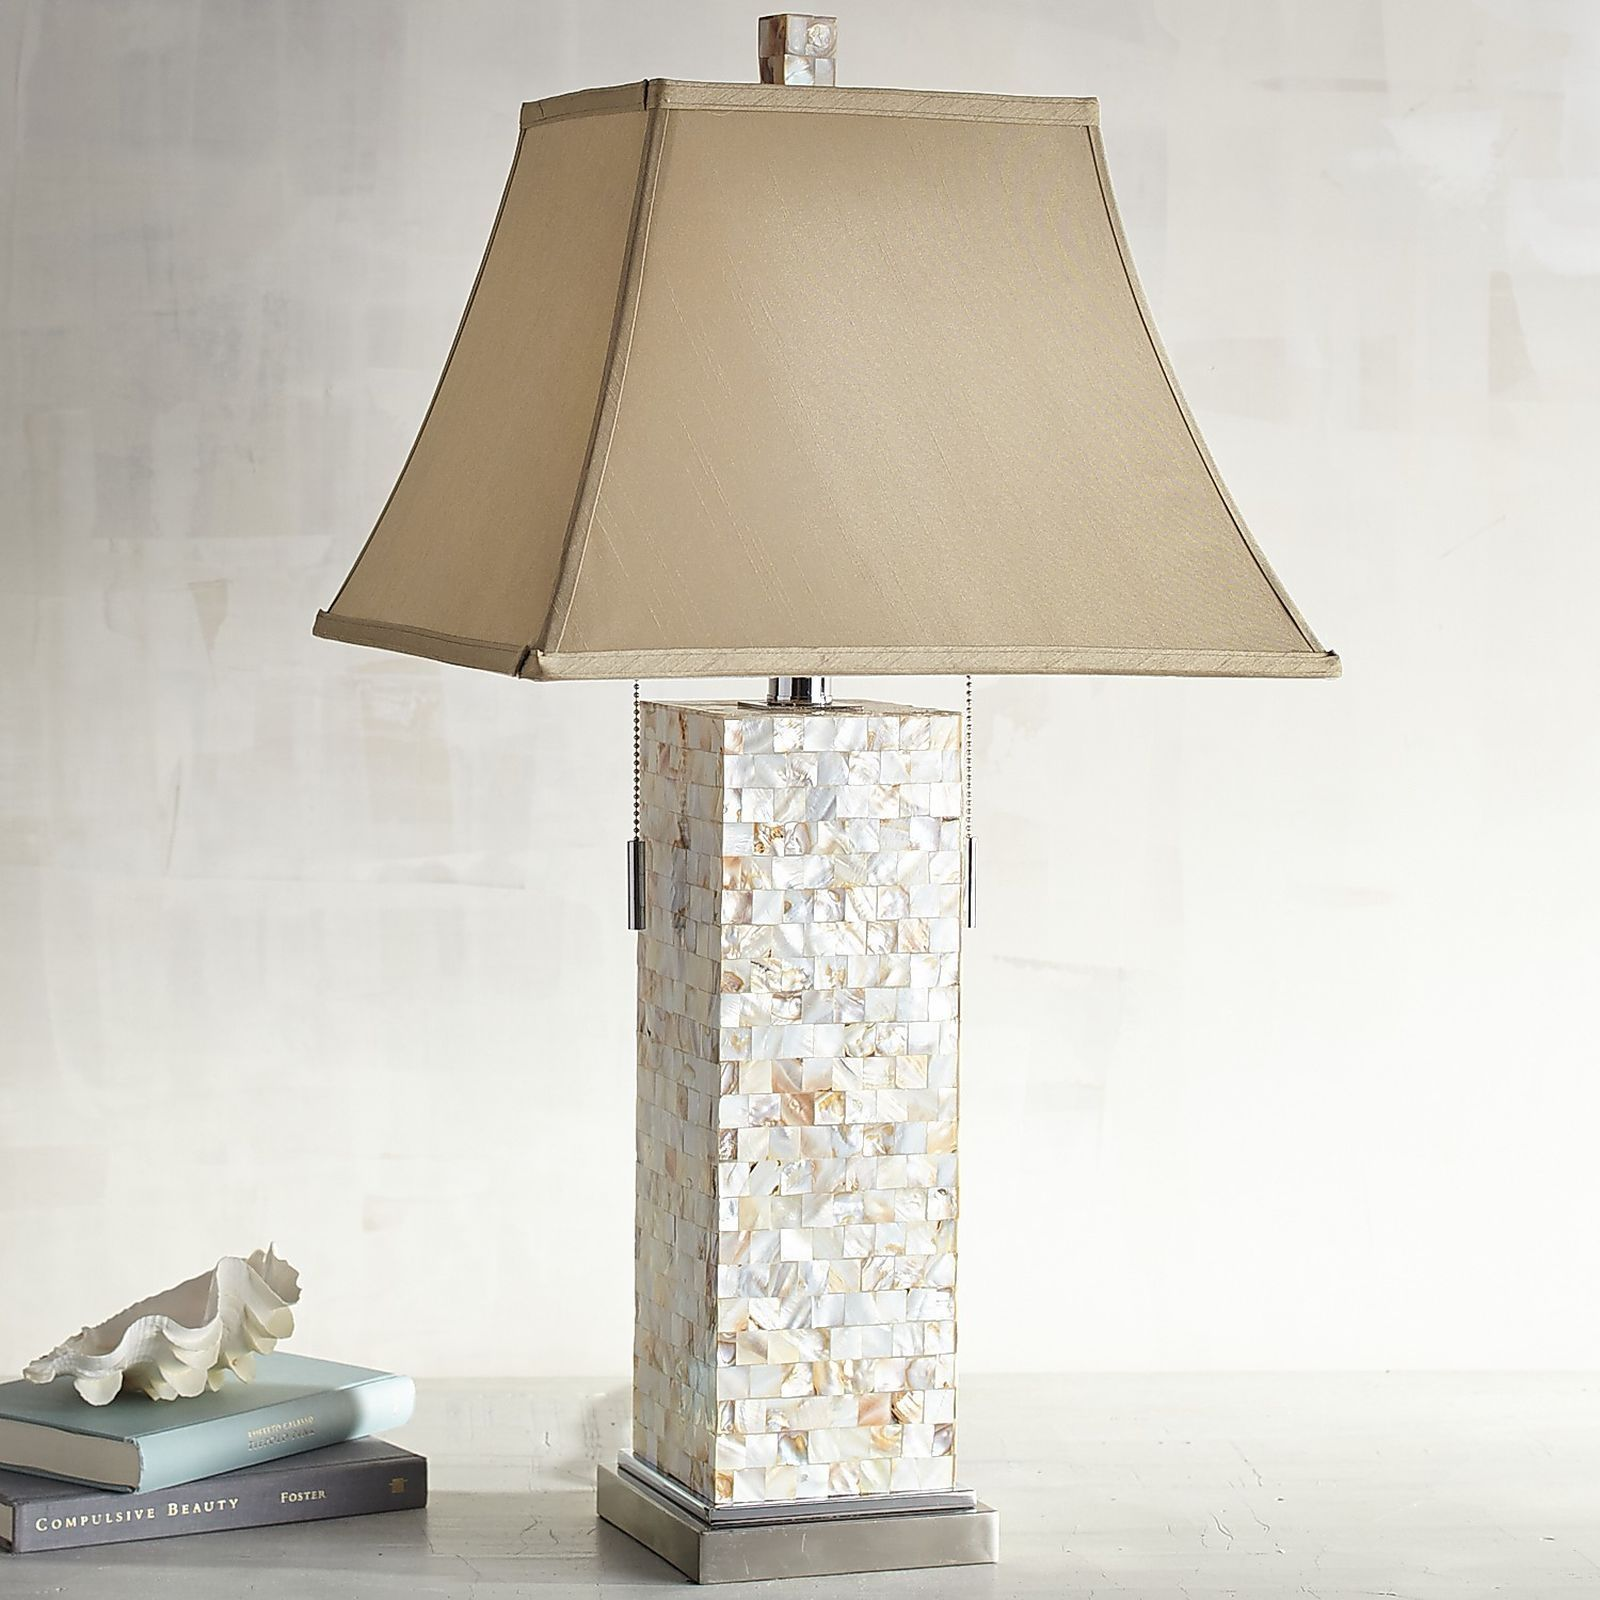 Sunset Table Lamp Pier One | http://argharts.com | Pinterest | Sunset